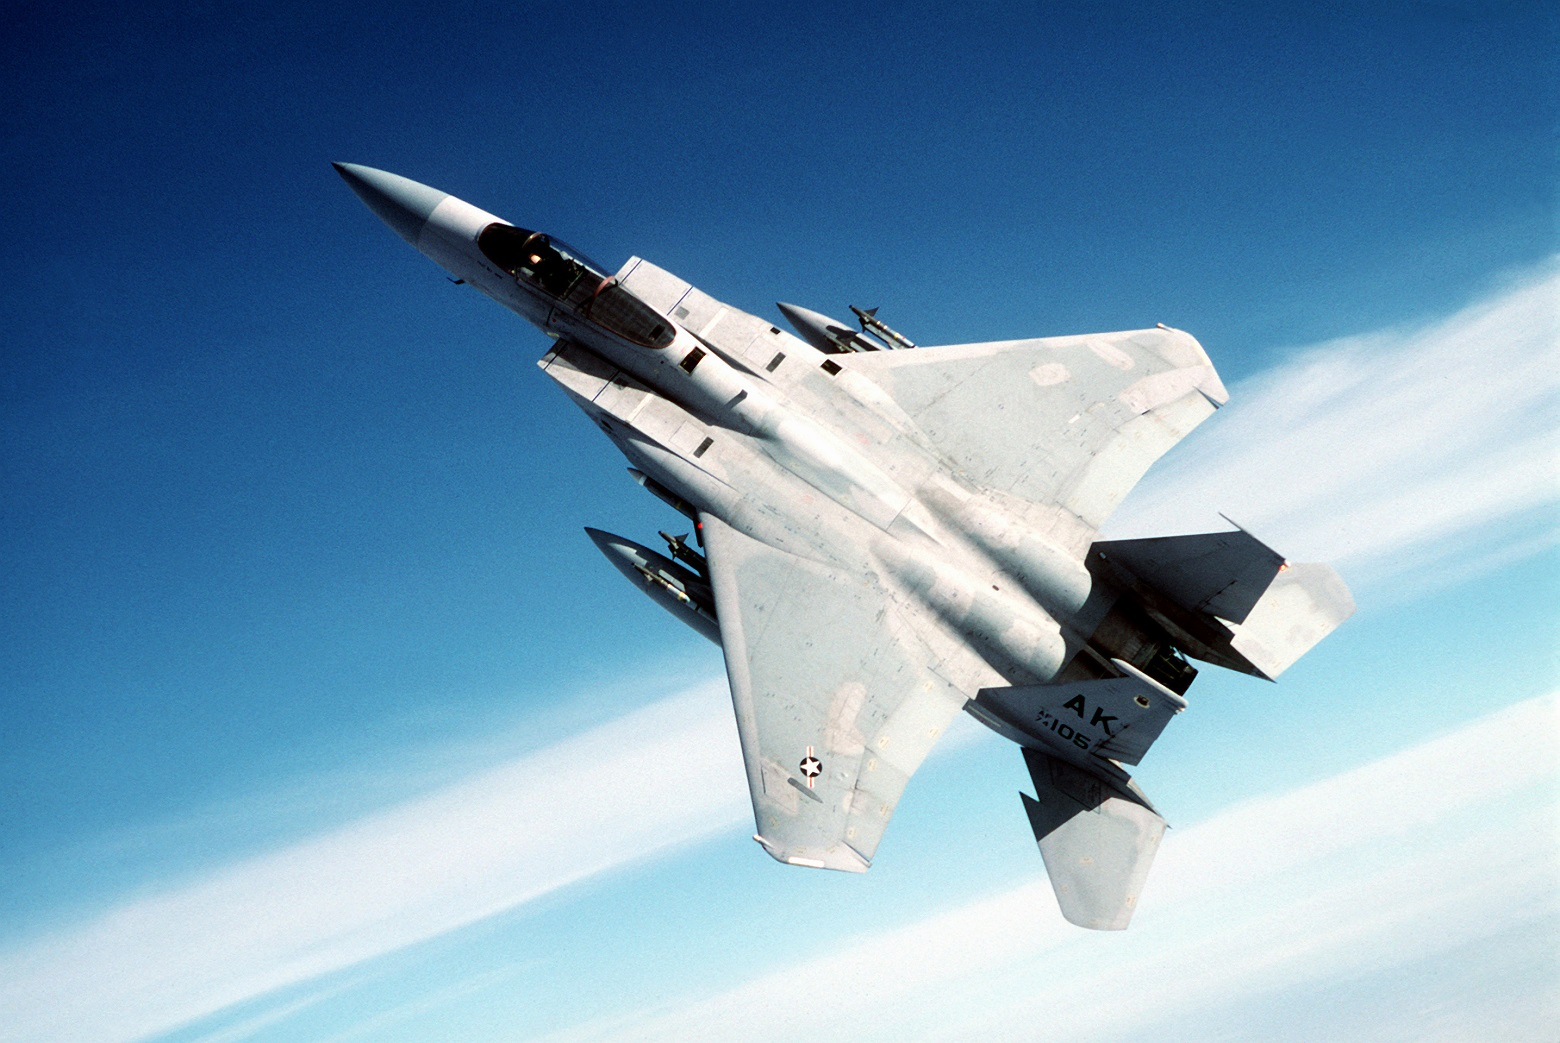 How to Kill an F-15 Eagle in Battle: Hackers?